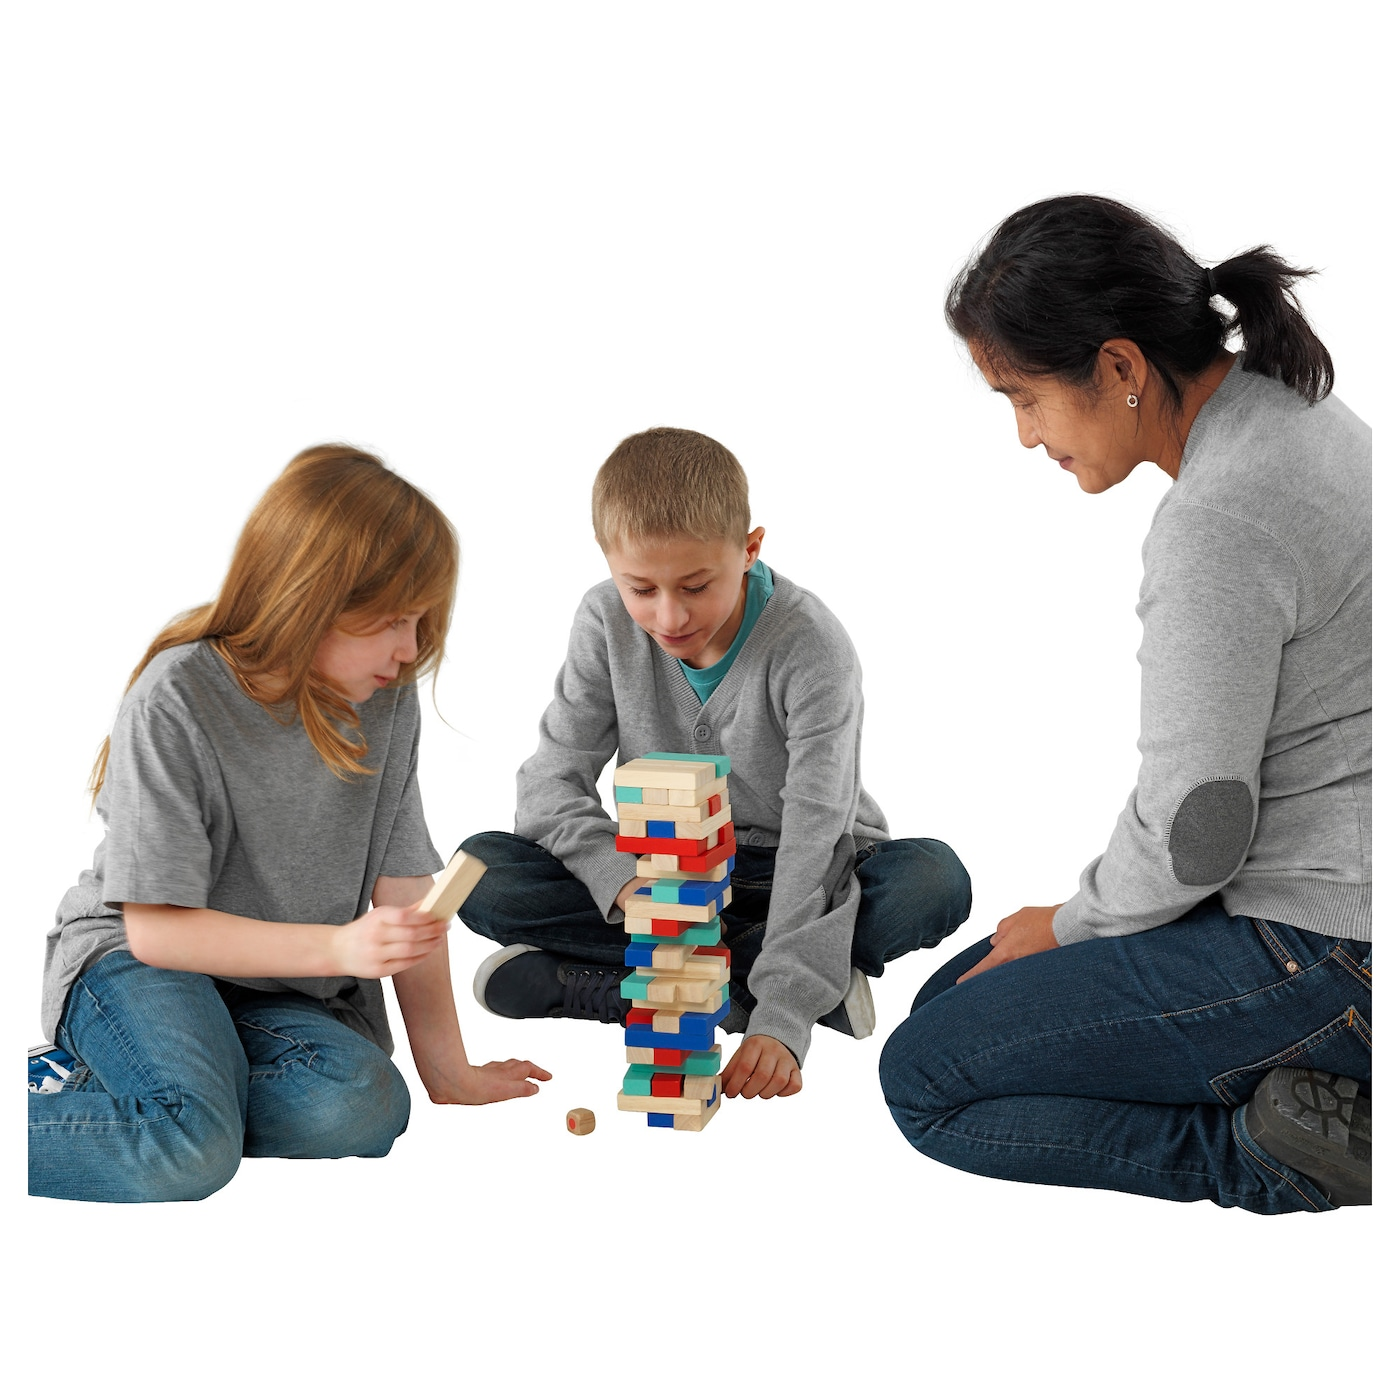 IKEA LATTJO stacking game Helps the child develop fine motor skills and hand/eye co-ordination.